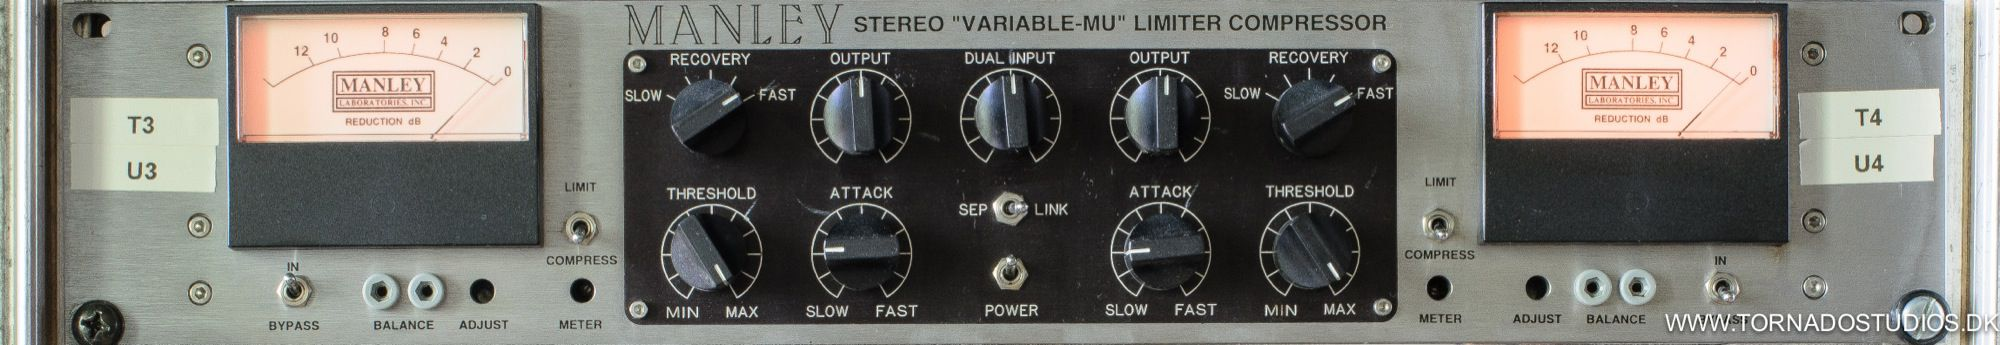 Manley Stereo Variable-MU Limiter Compressor